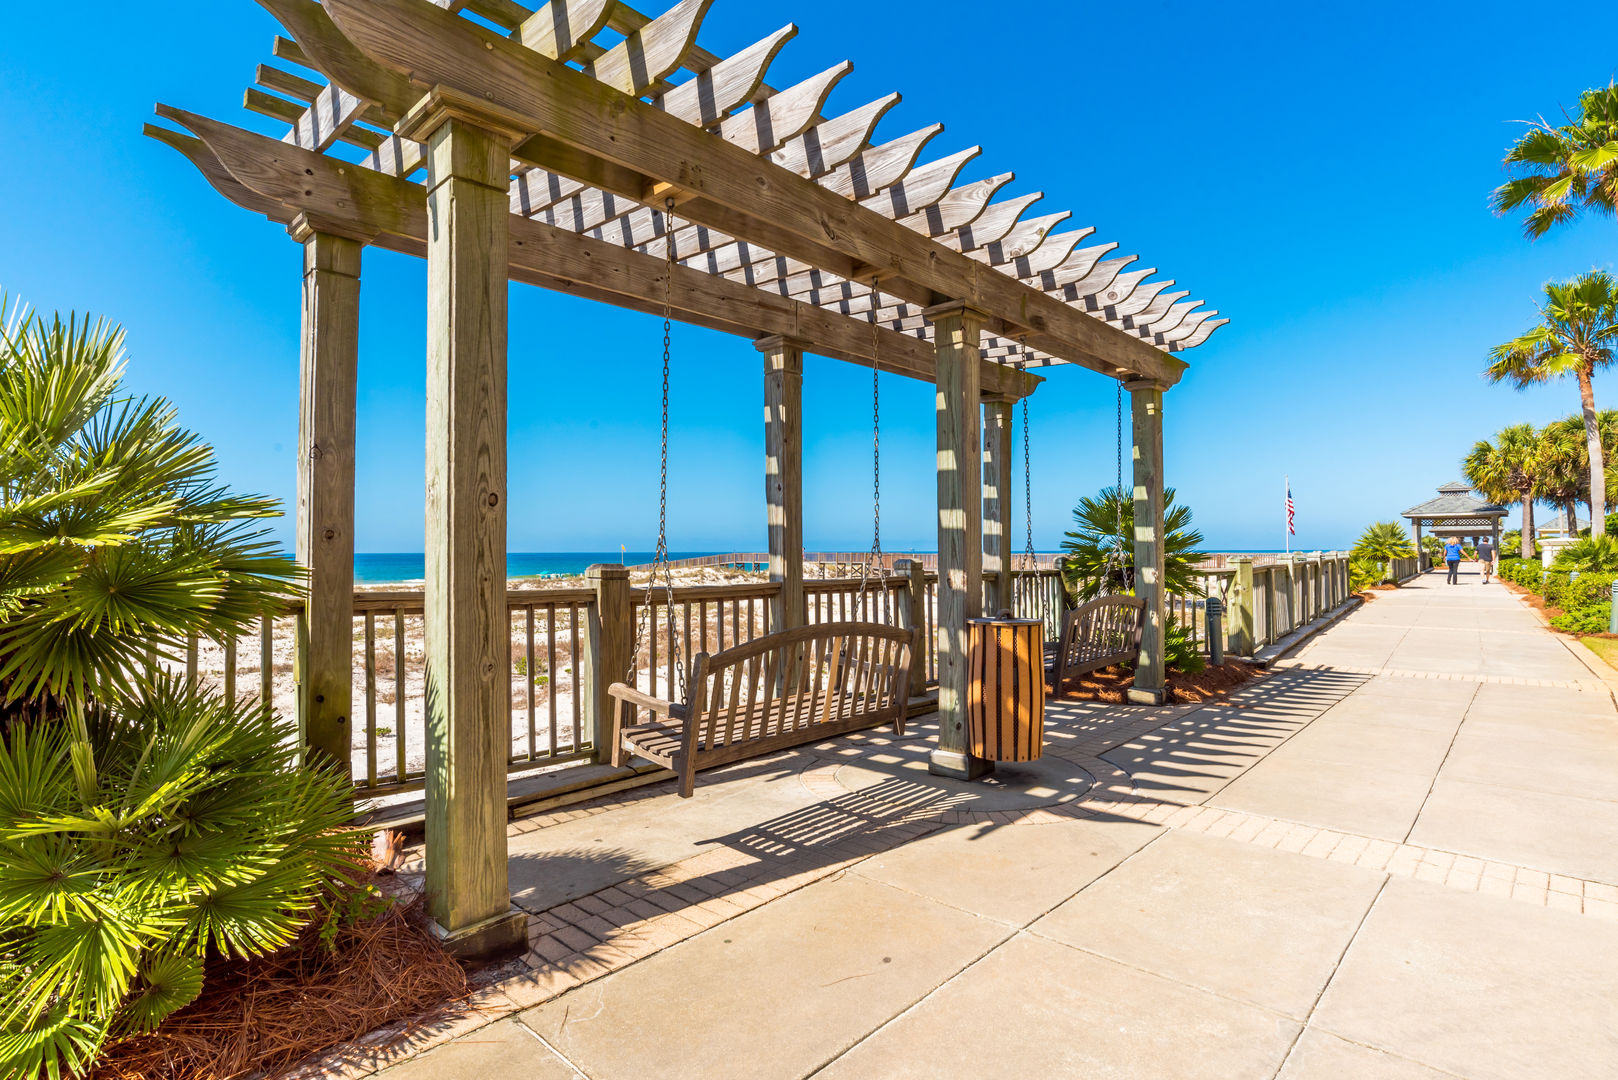 Wooden Beach Swing with Sea View at the Beach Club Resort.